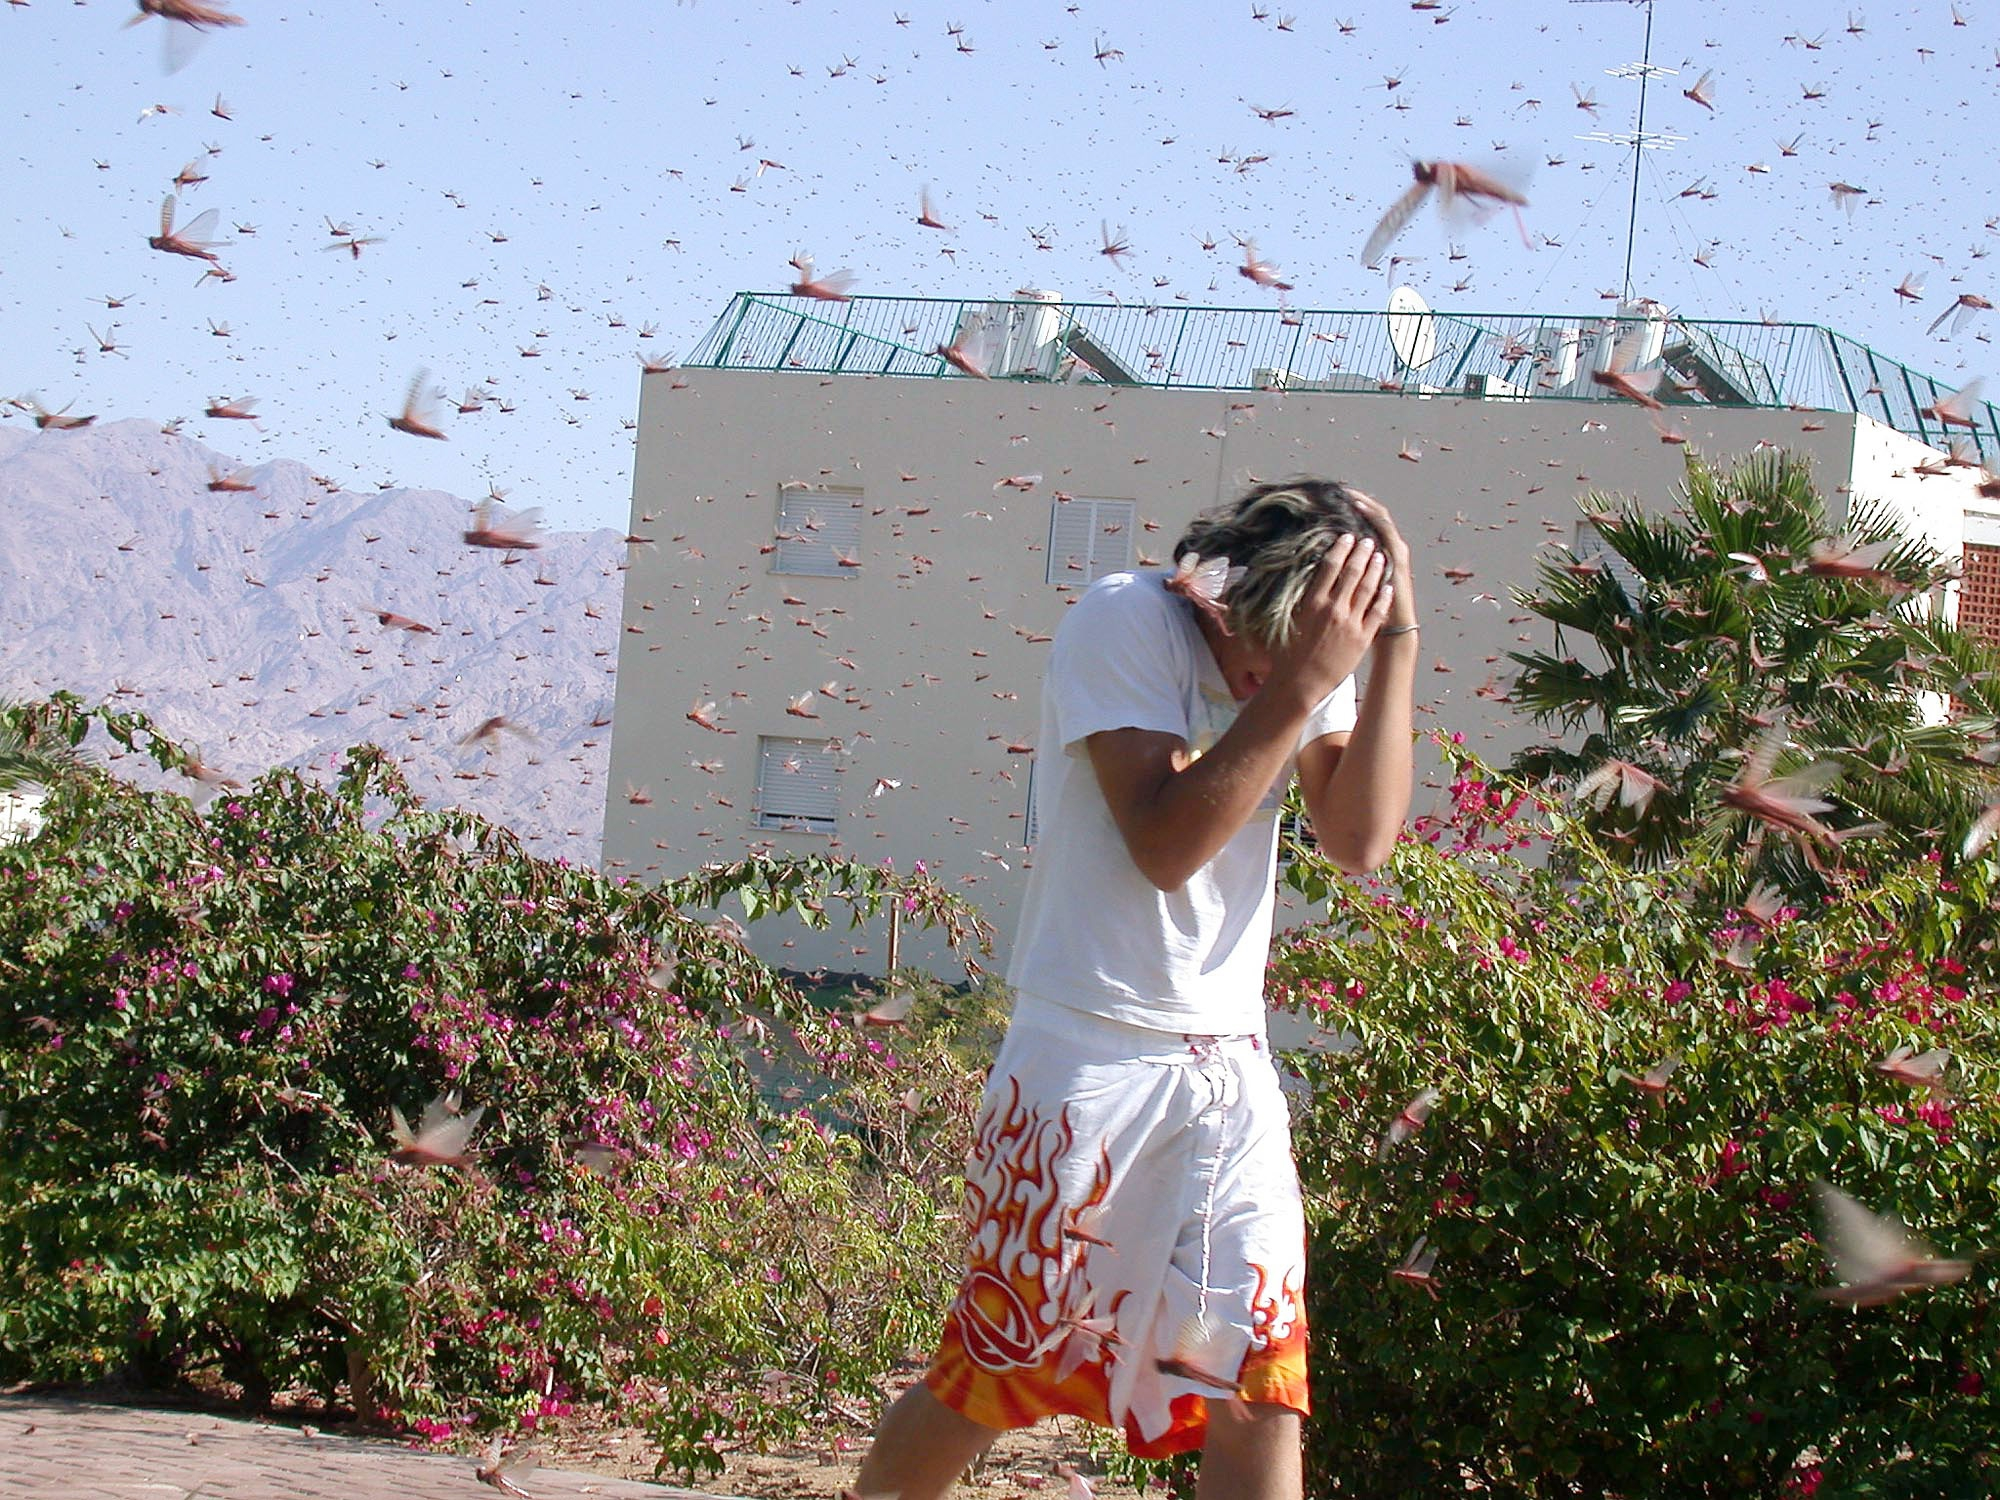 Huge Swarms Of Locusts Are Taking Over Israel!